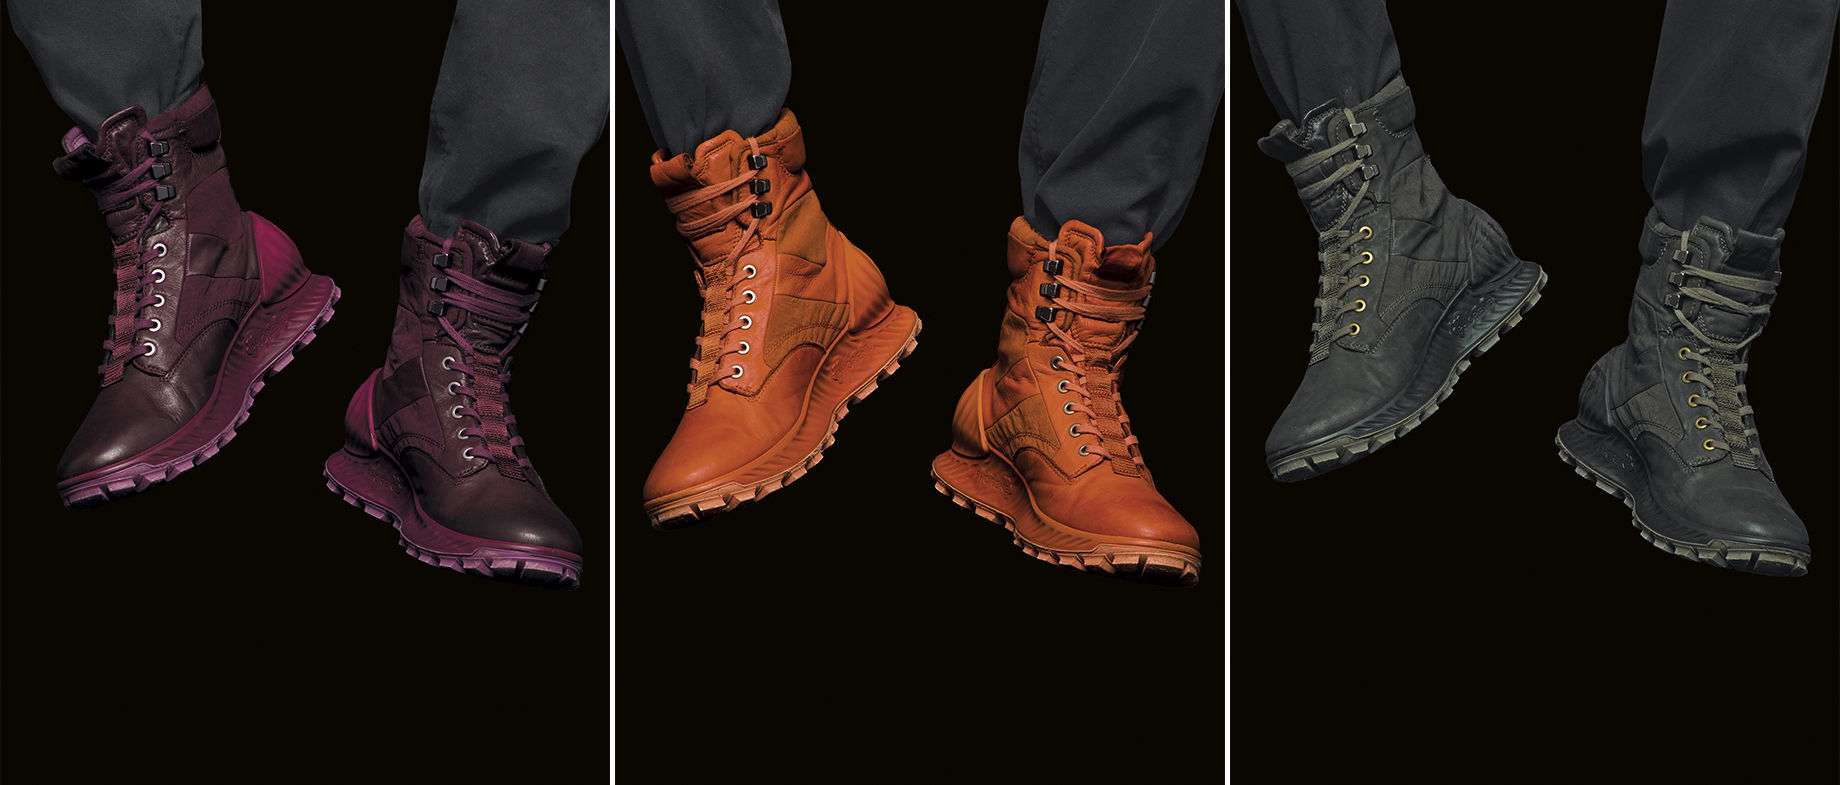 Three photos of rugged lace up ankle boots with tread soles in maroon, orange, and dark green with monochrome laces